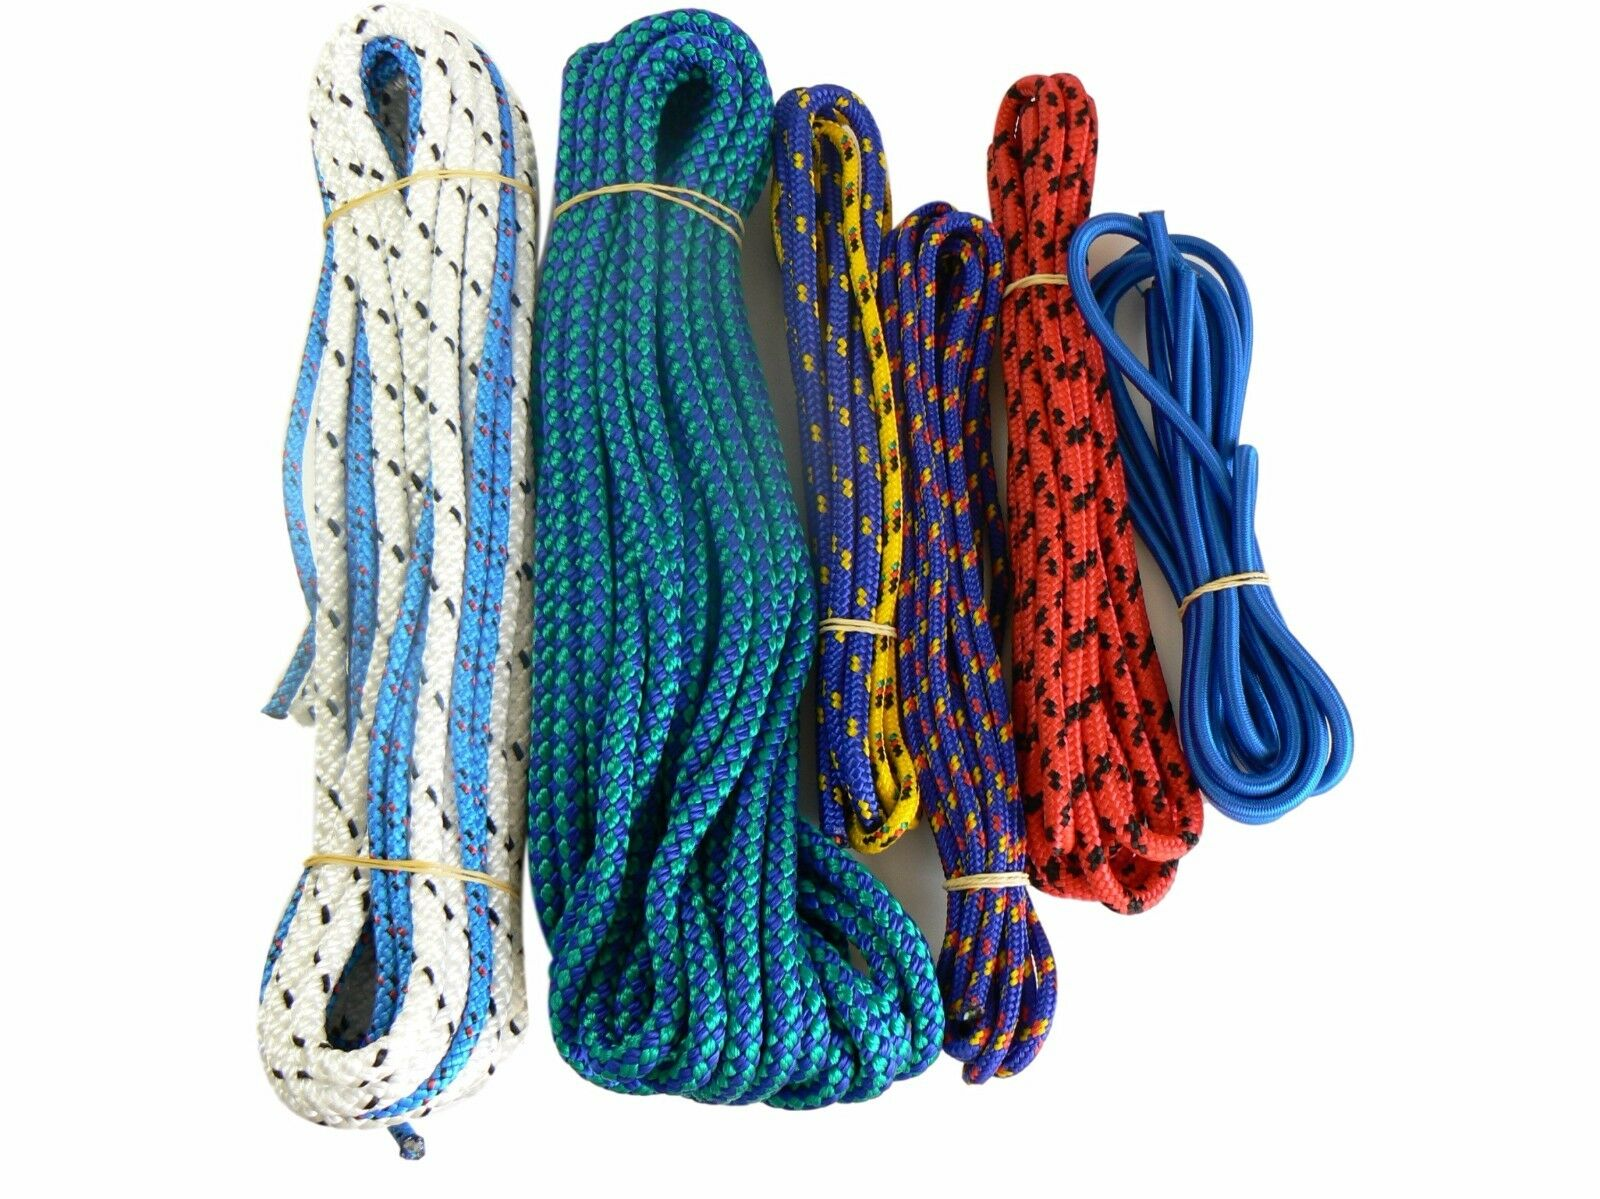 Replacement Pico Rope Kit   HT7071